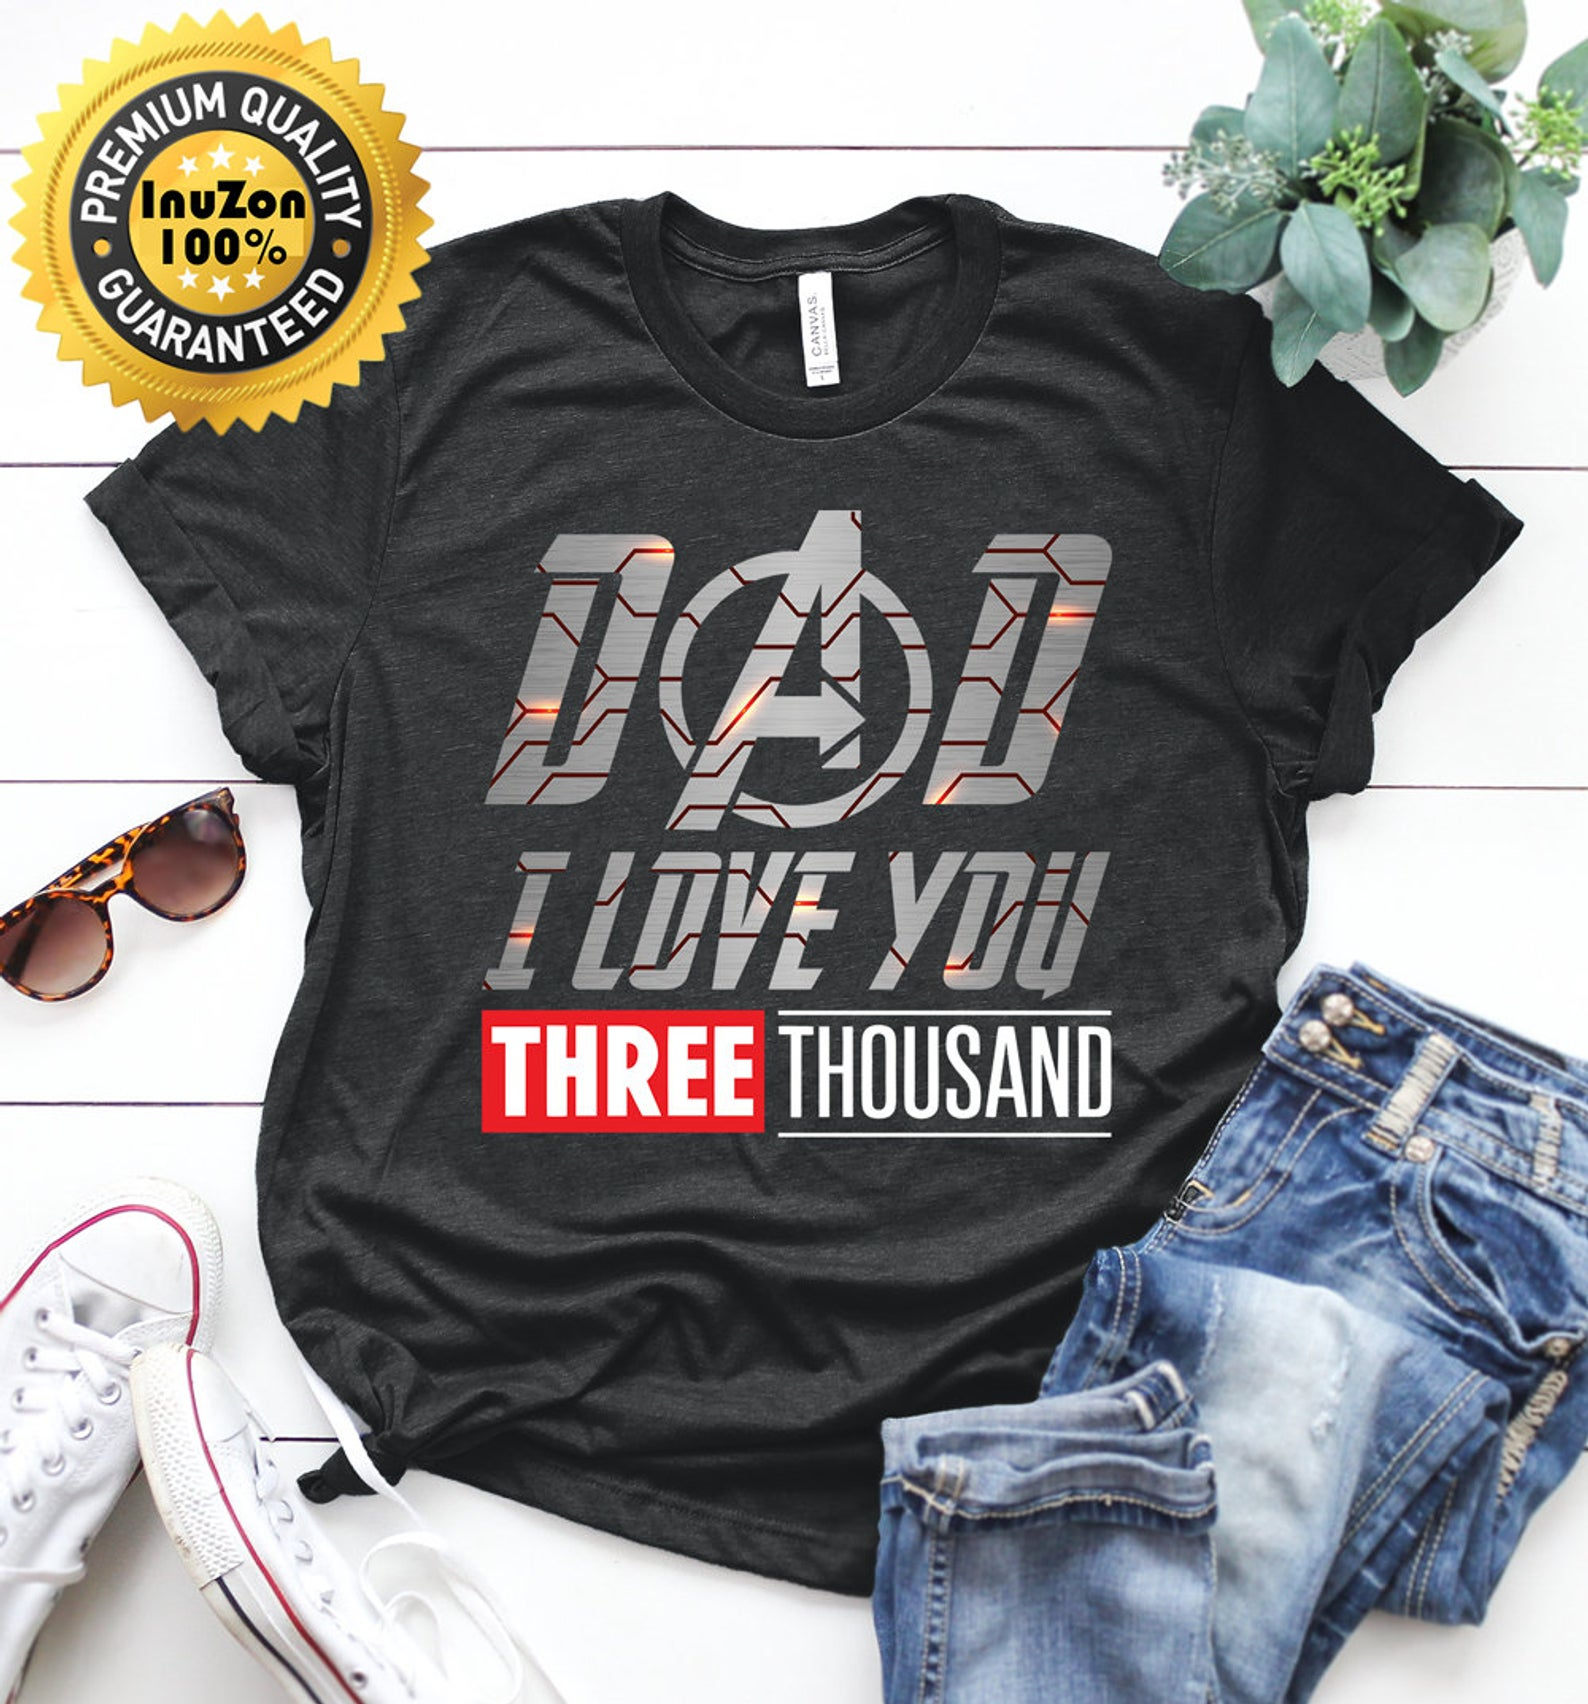 2cd6c6b5 Dad I Love You Shirt Gift Father's Day - Reviewshirts Office